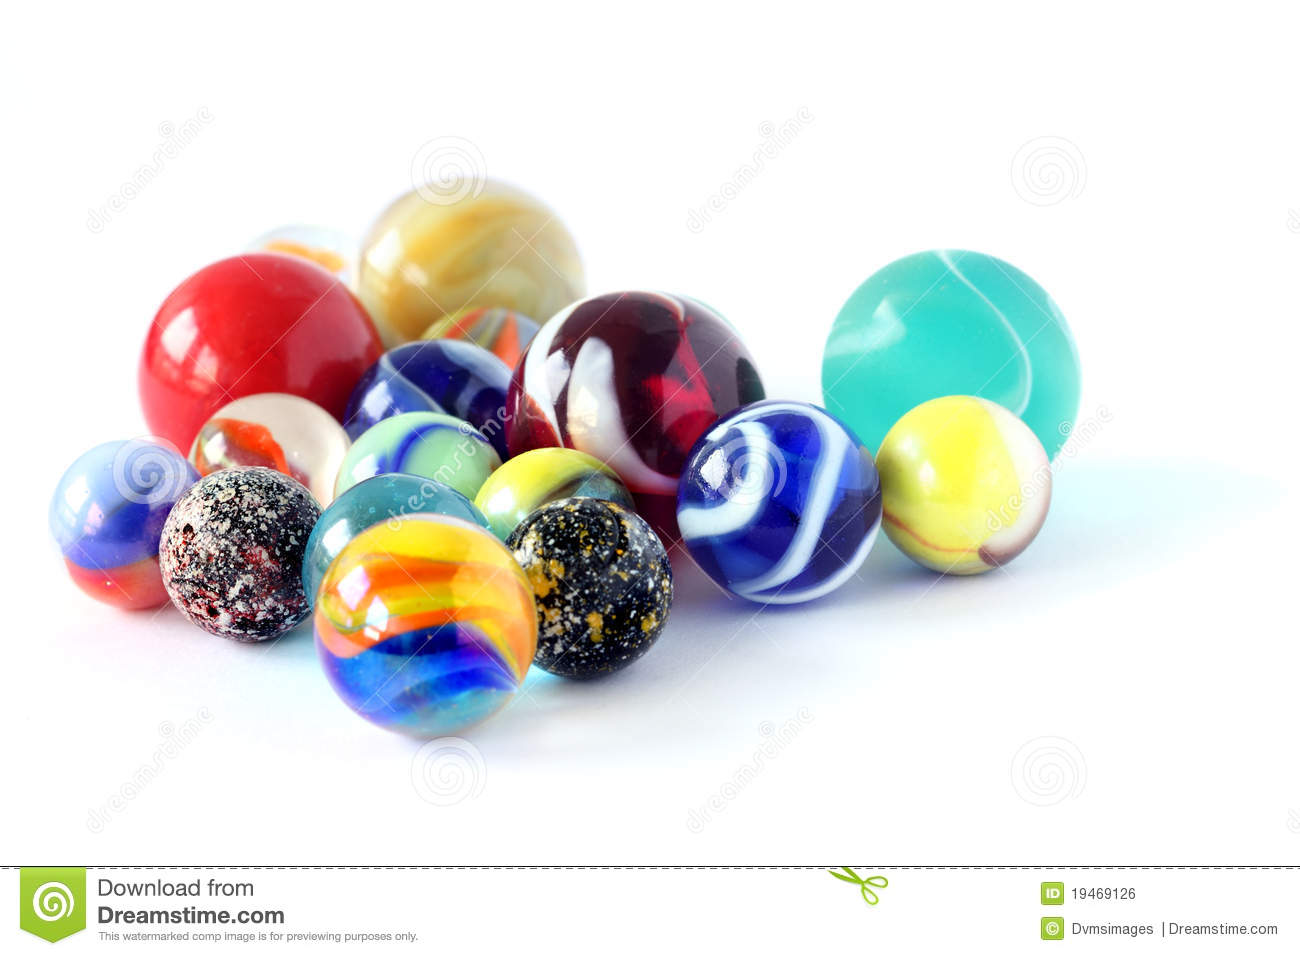 Amazing Marbles Pictures & Backgrounds